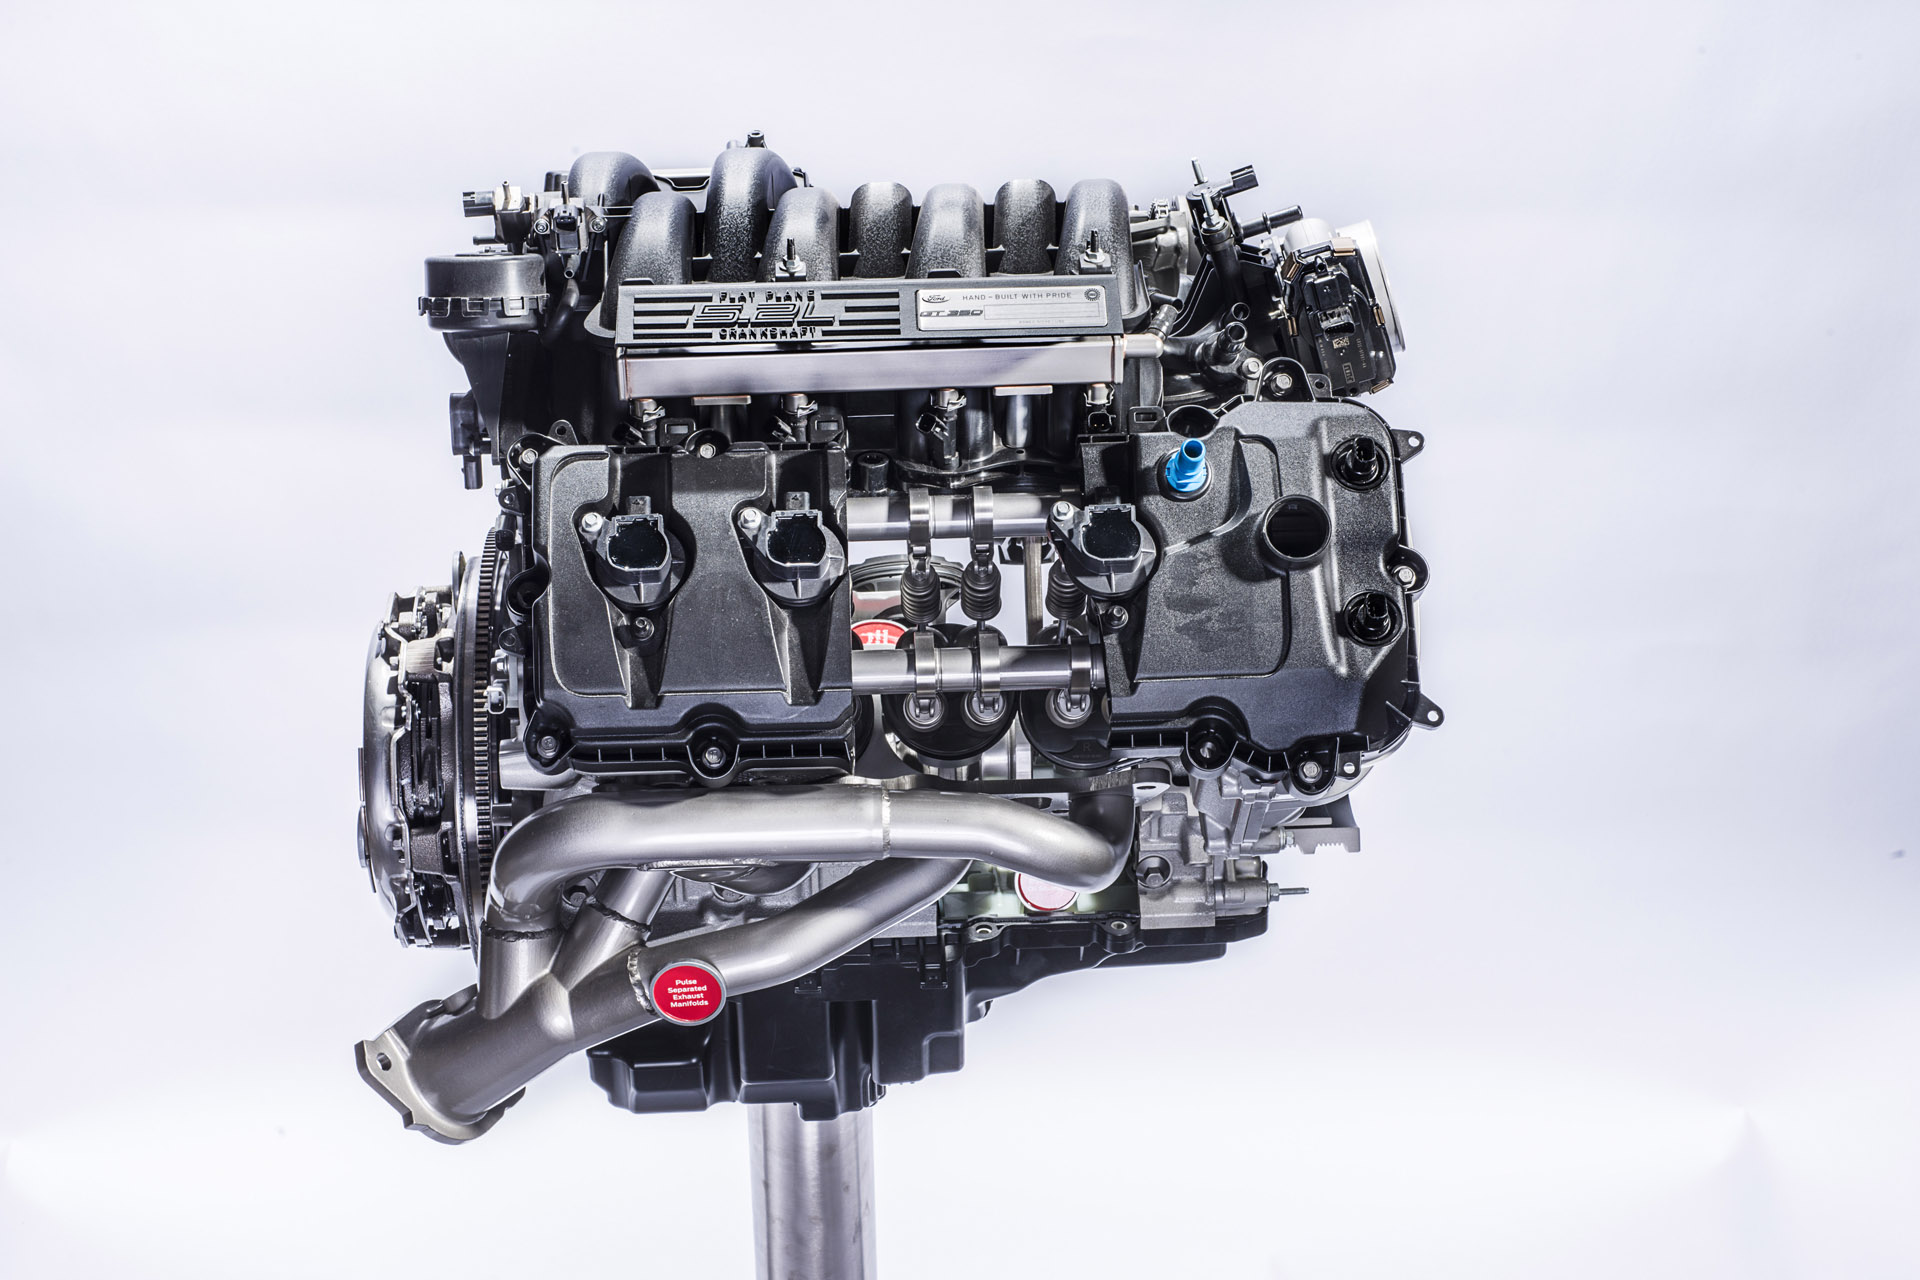 The all-new Ford 5.2-liter flat-plane crankshaft V8 found in the Shelby GT350 and GT350R Mustang will produce 526 horsepower and 429 lb.-ft. of torque. At 102 horsepower per liter, the engine is both the most power-dense and the most powerful naturally aspirated road-going engine in Ford history